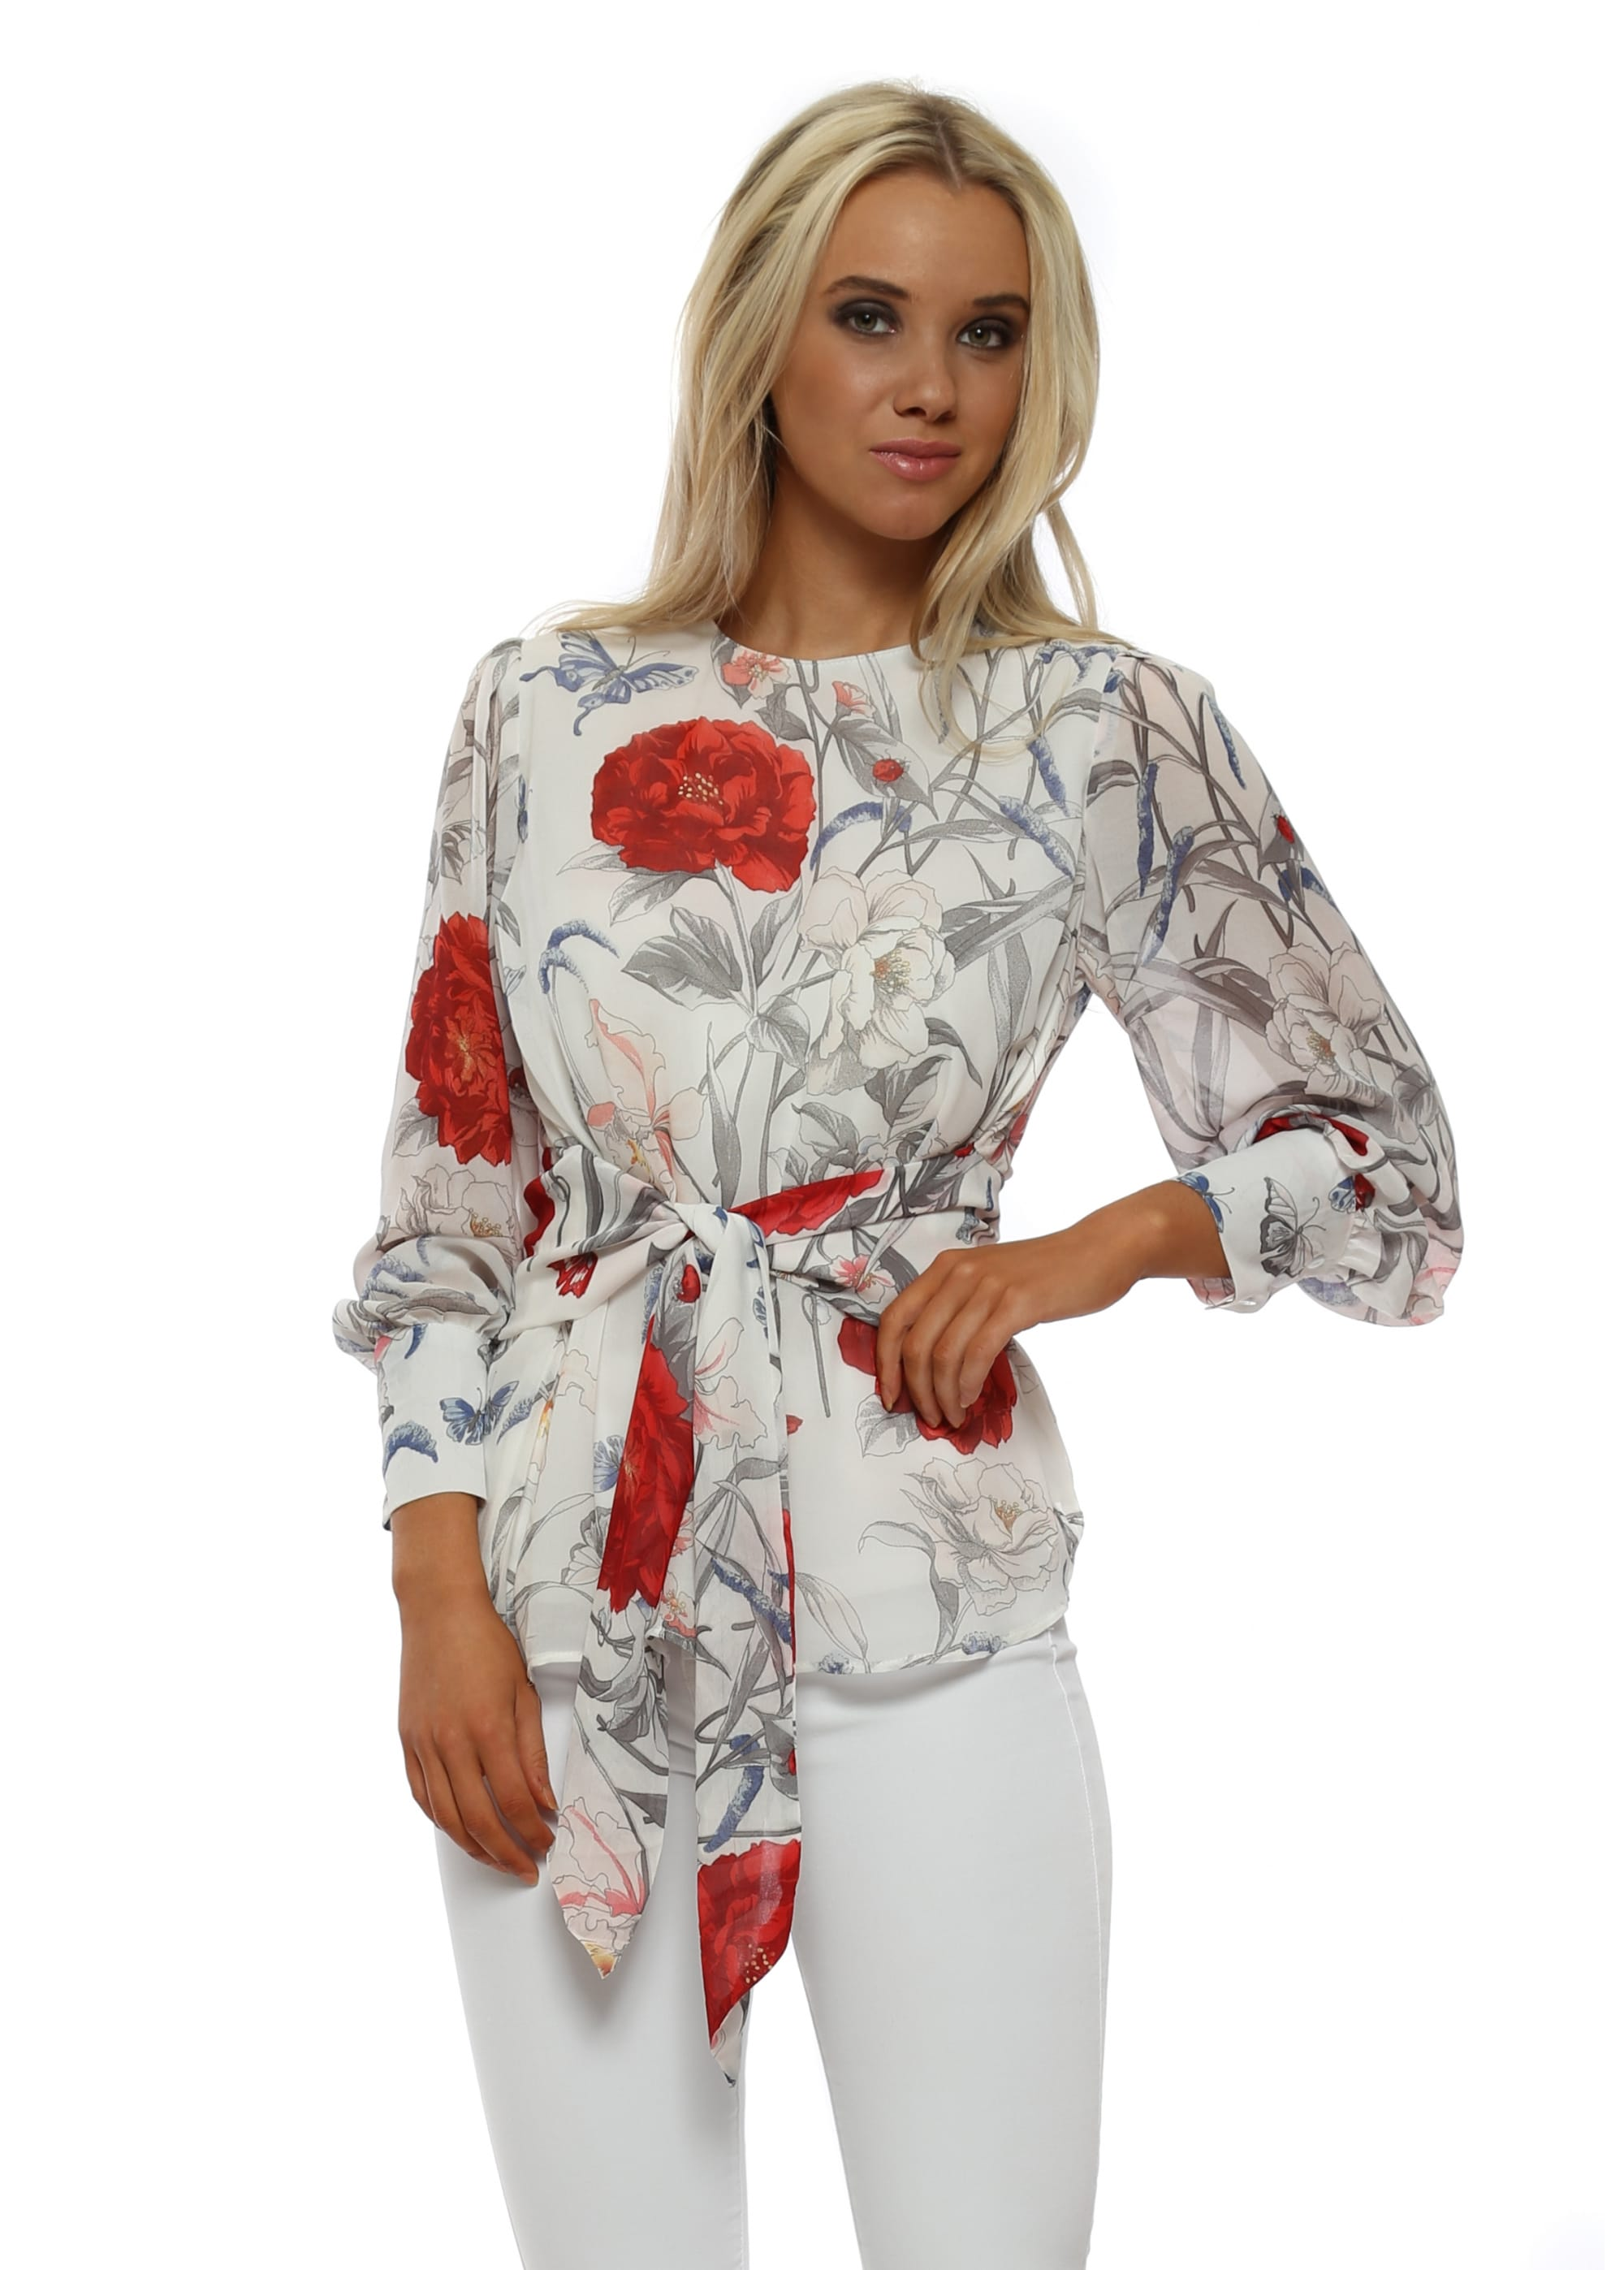 2fedede419bc67 White & Red Floral Tie Front Blouse Top